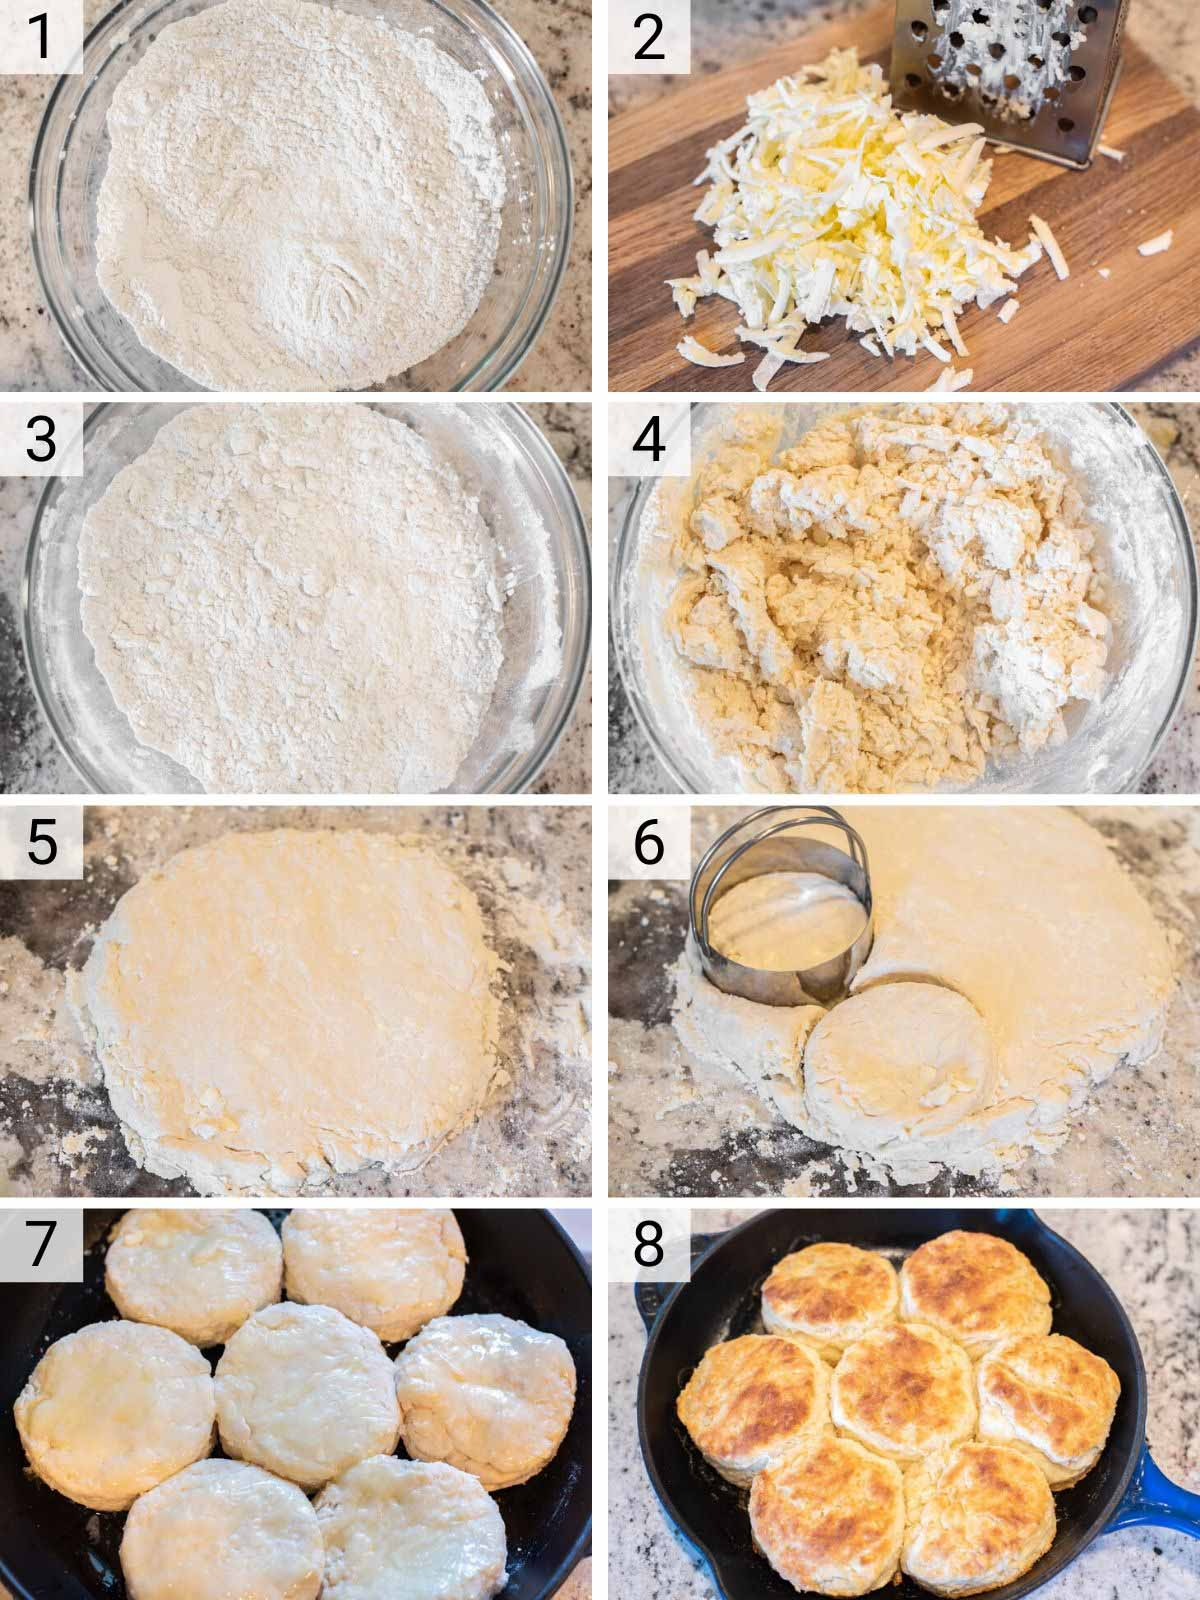 process shots of how to make buttermilk biscuits